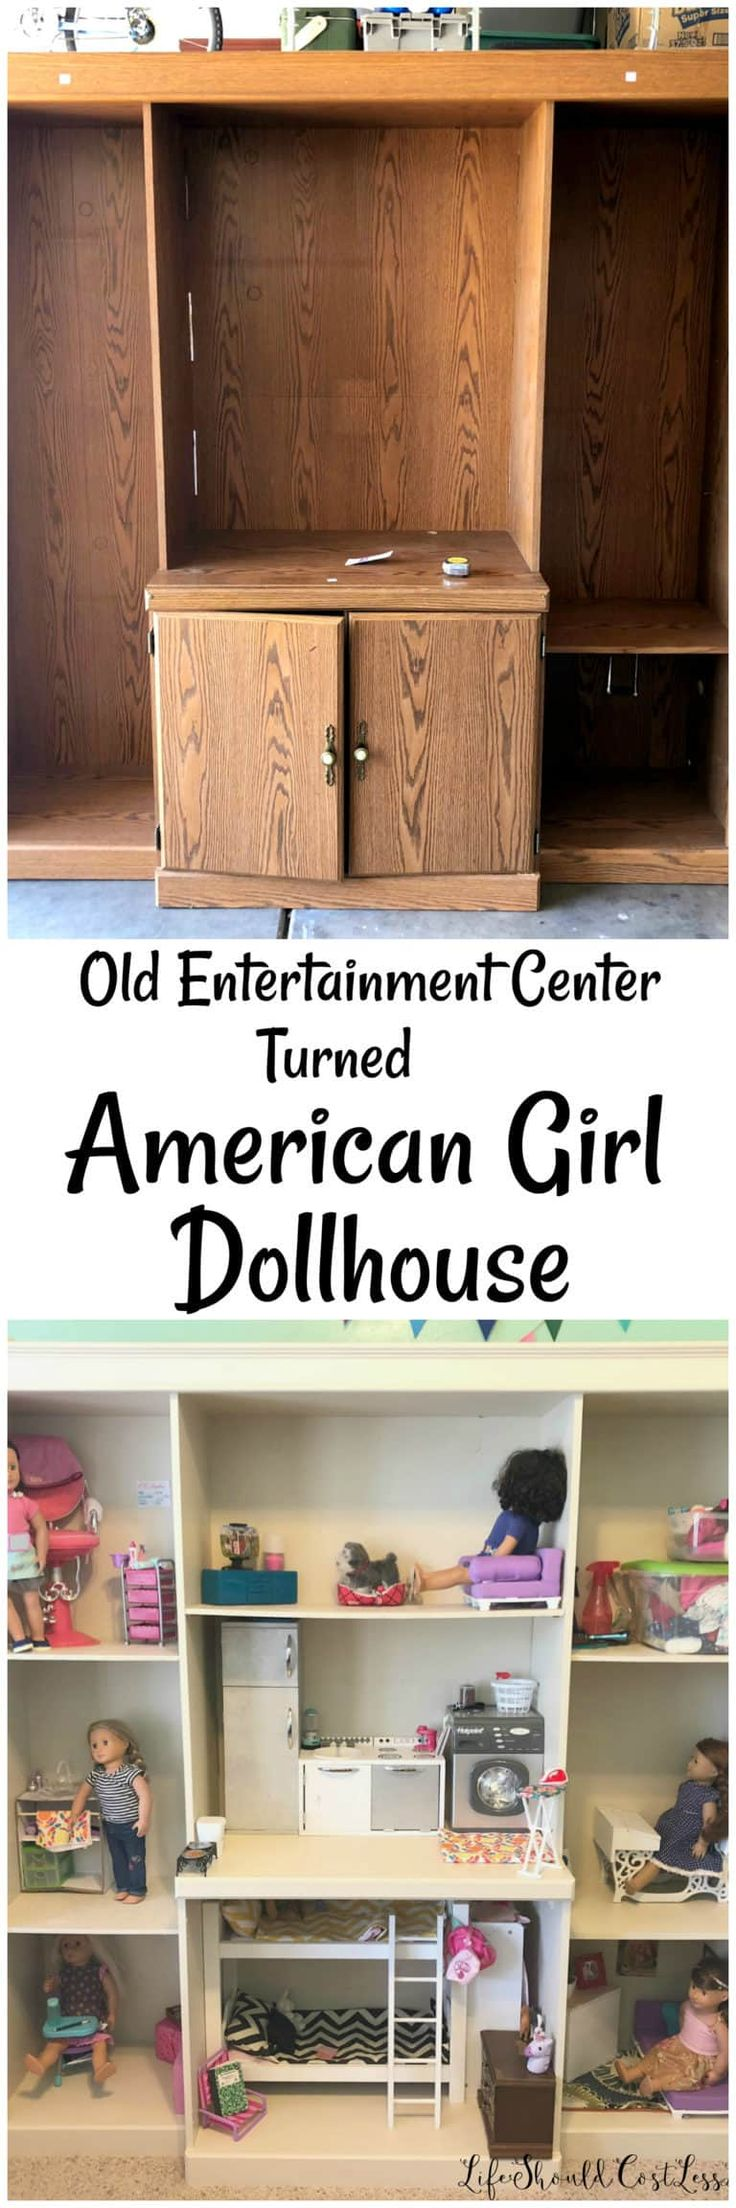 How To Turn An Old Entertainment Center Into An American Girl (18 inch) Dollhouse – Life Should Cost Less